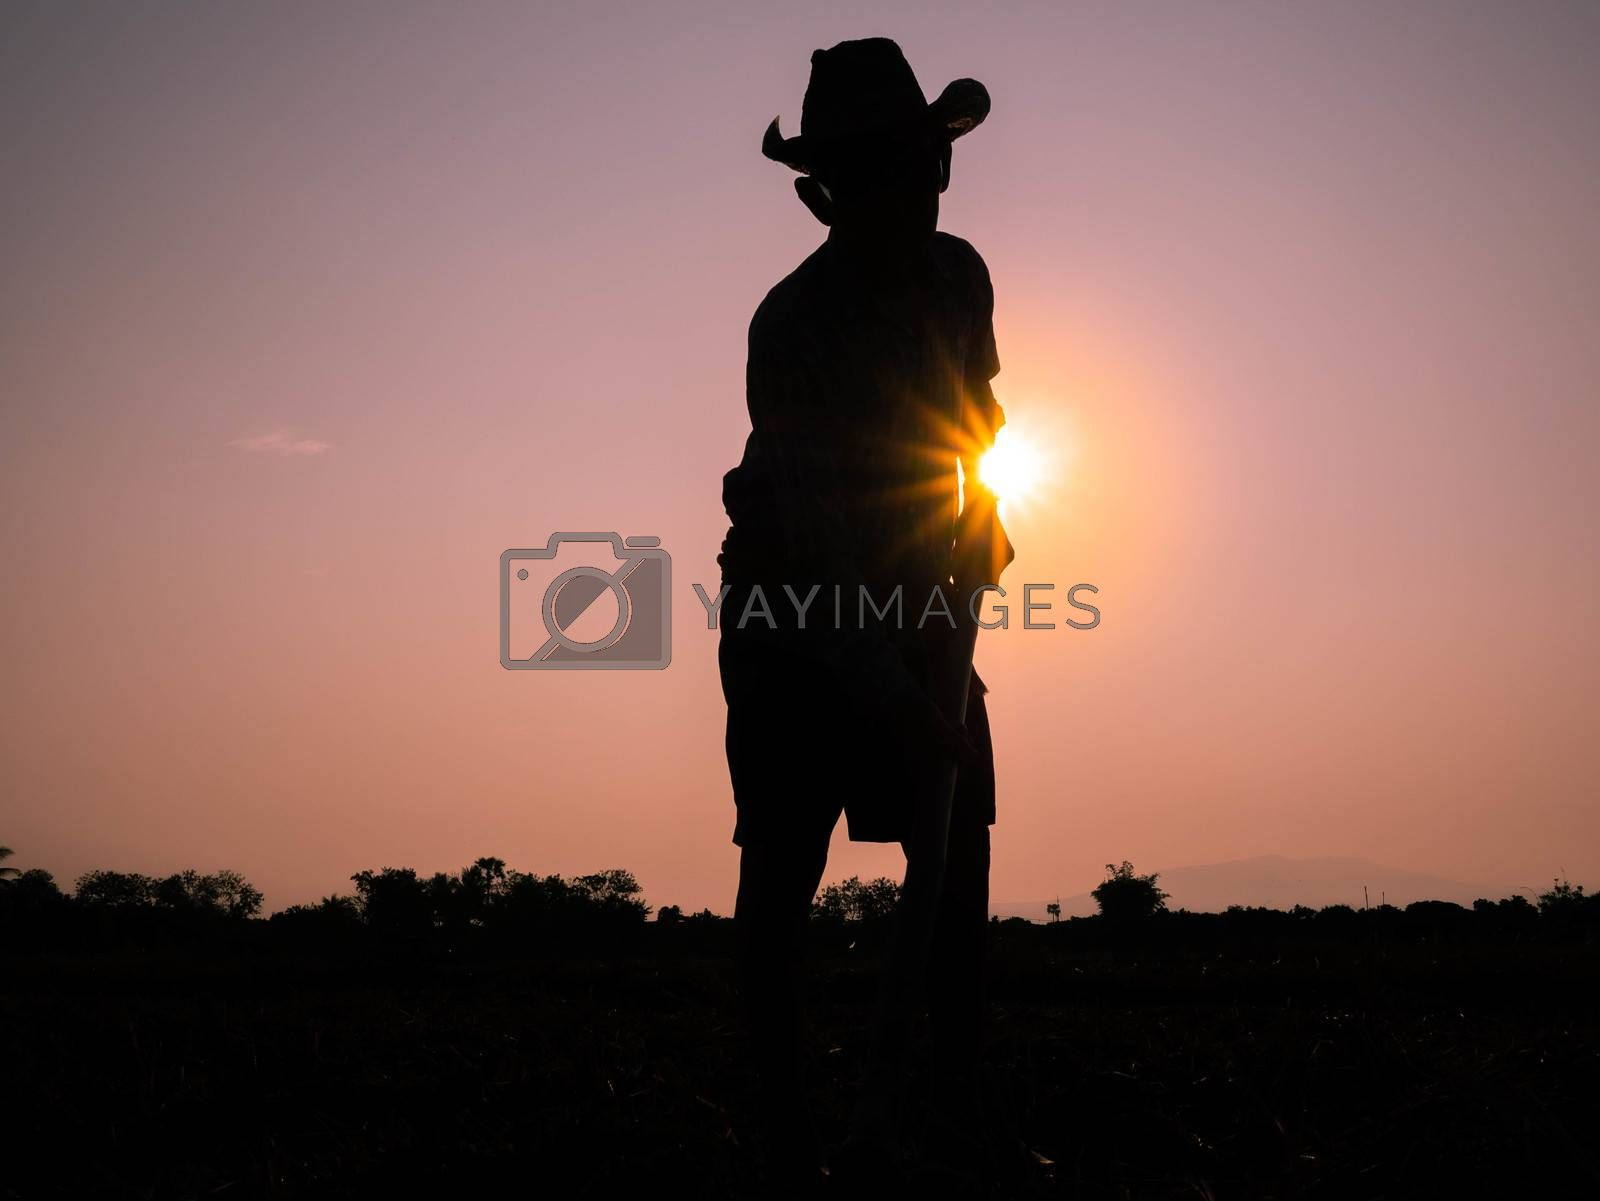 Silhouette of Elderly Asian farmers shoveling and prepare the soil with a spade for planting on sunset background.